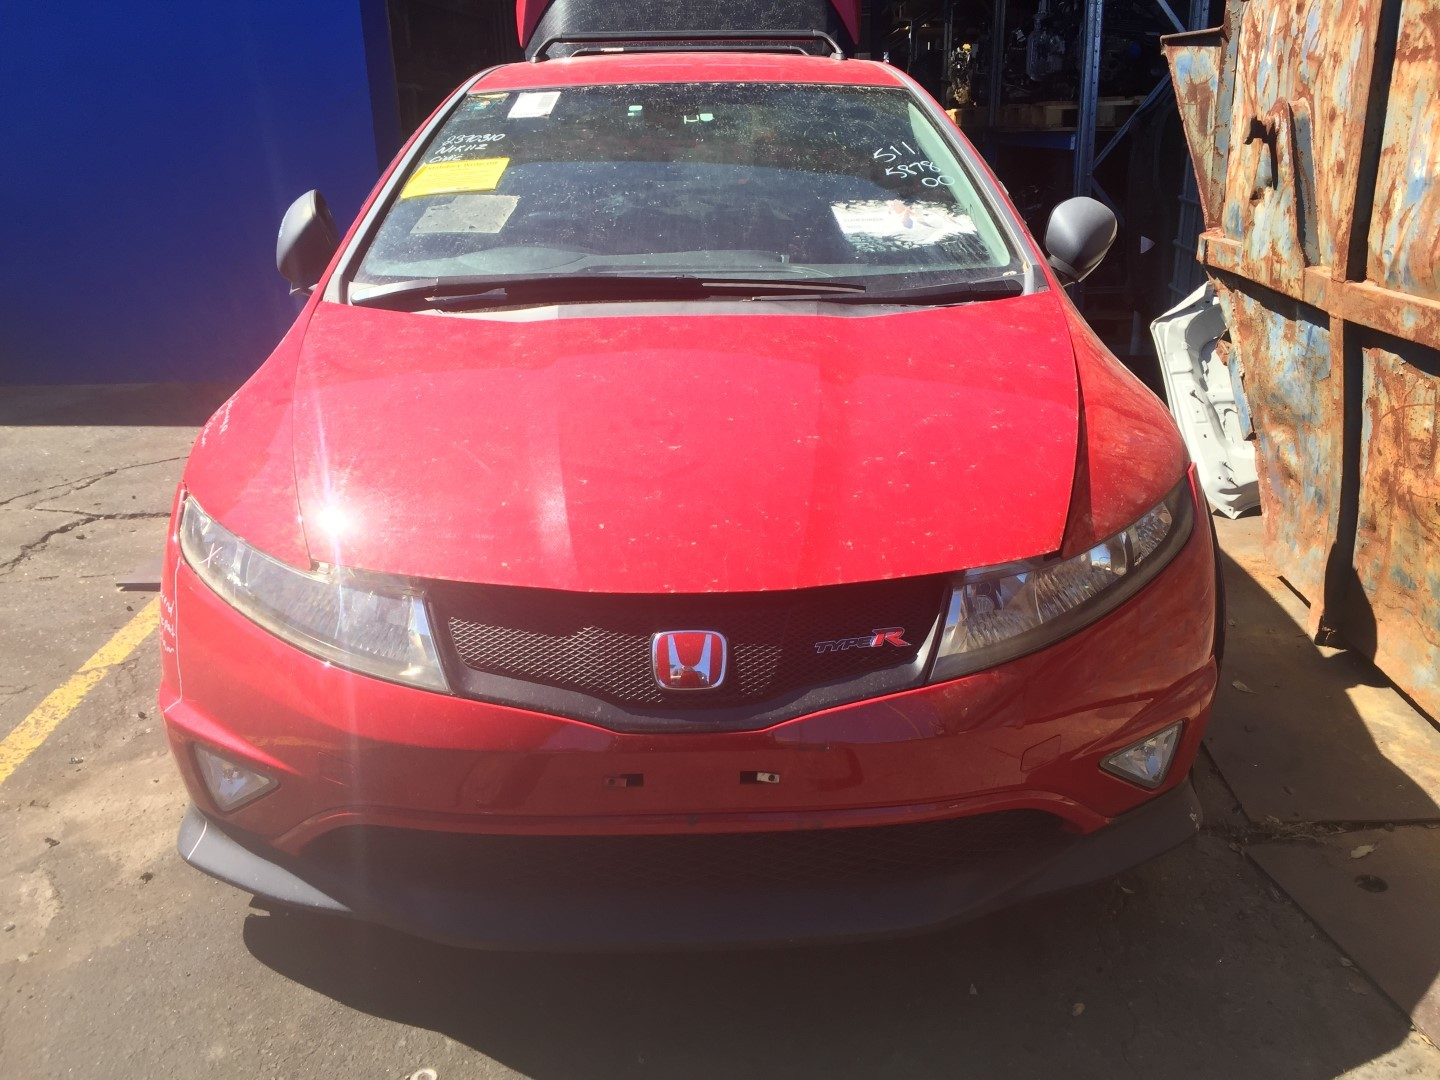 Honda Wrecking CIVIC FN2 Red Type R Hatch K20 Gearbox Parts